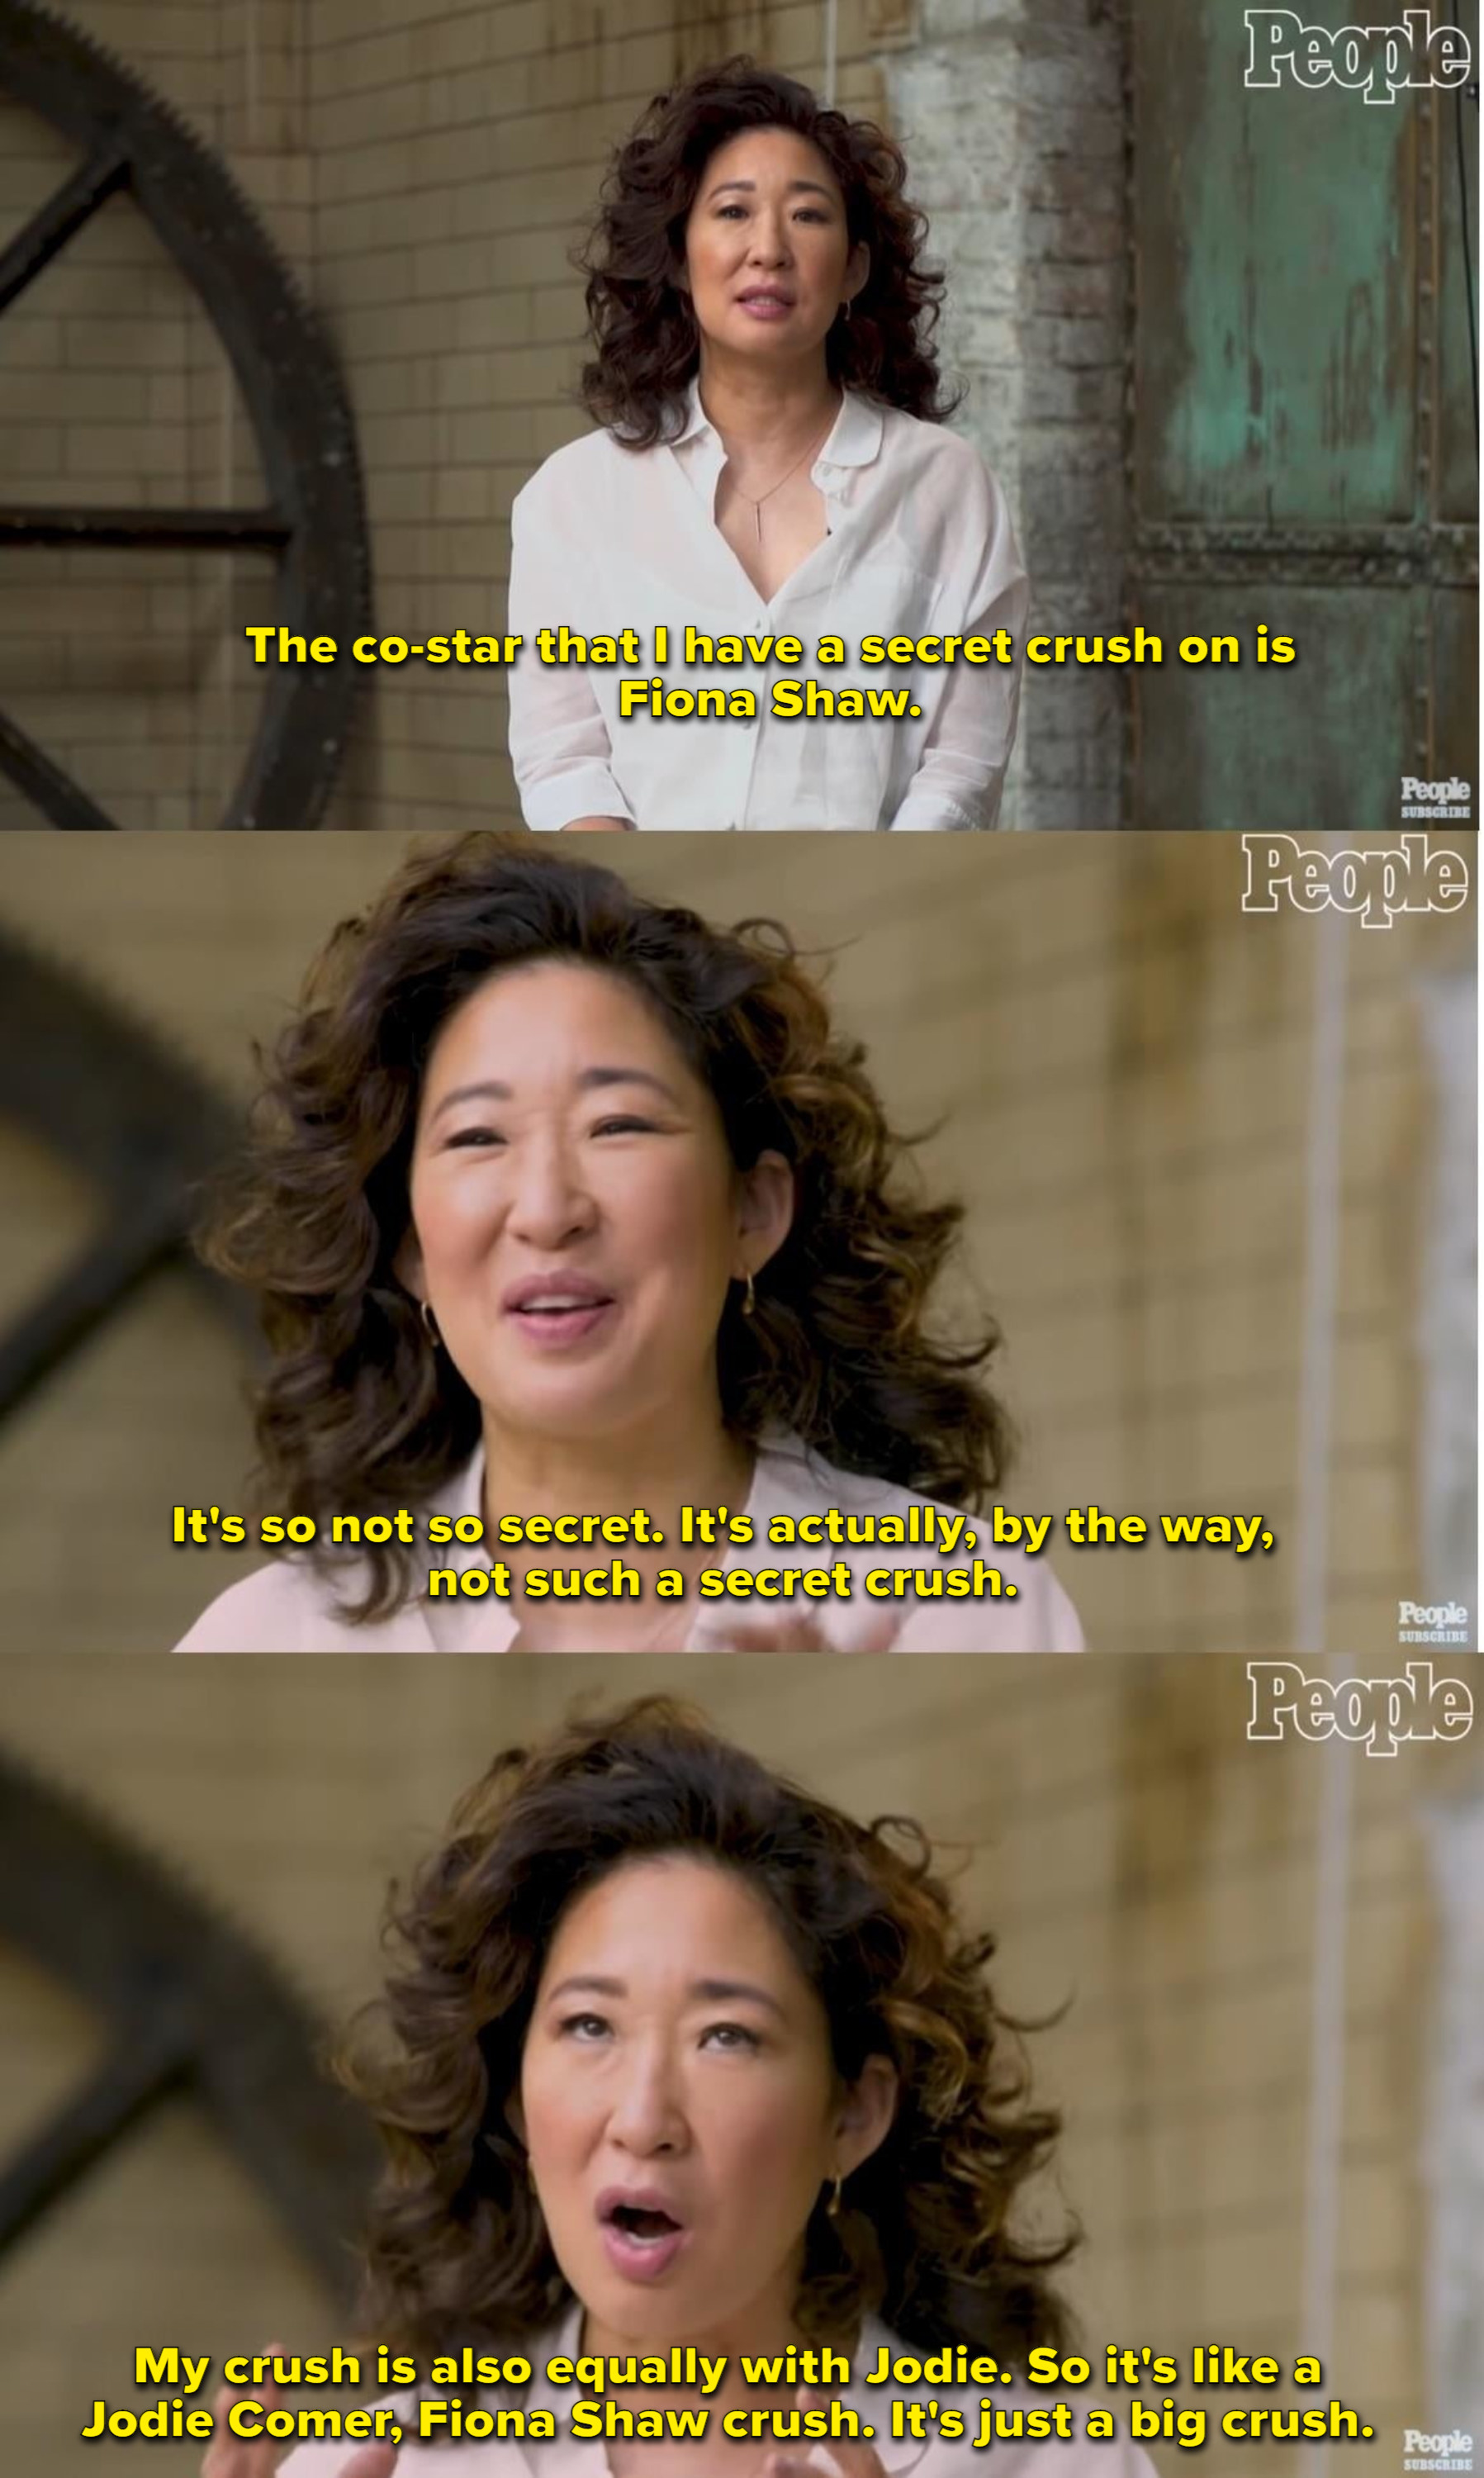 Sandra Oh talks about how she has a secret crush on Fiona Shaw and Jodie Comer